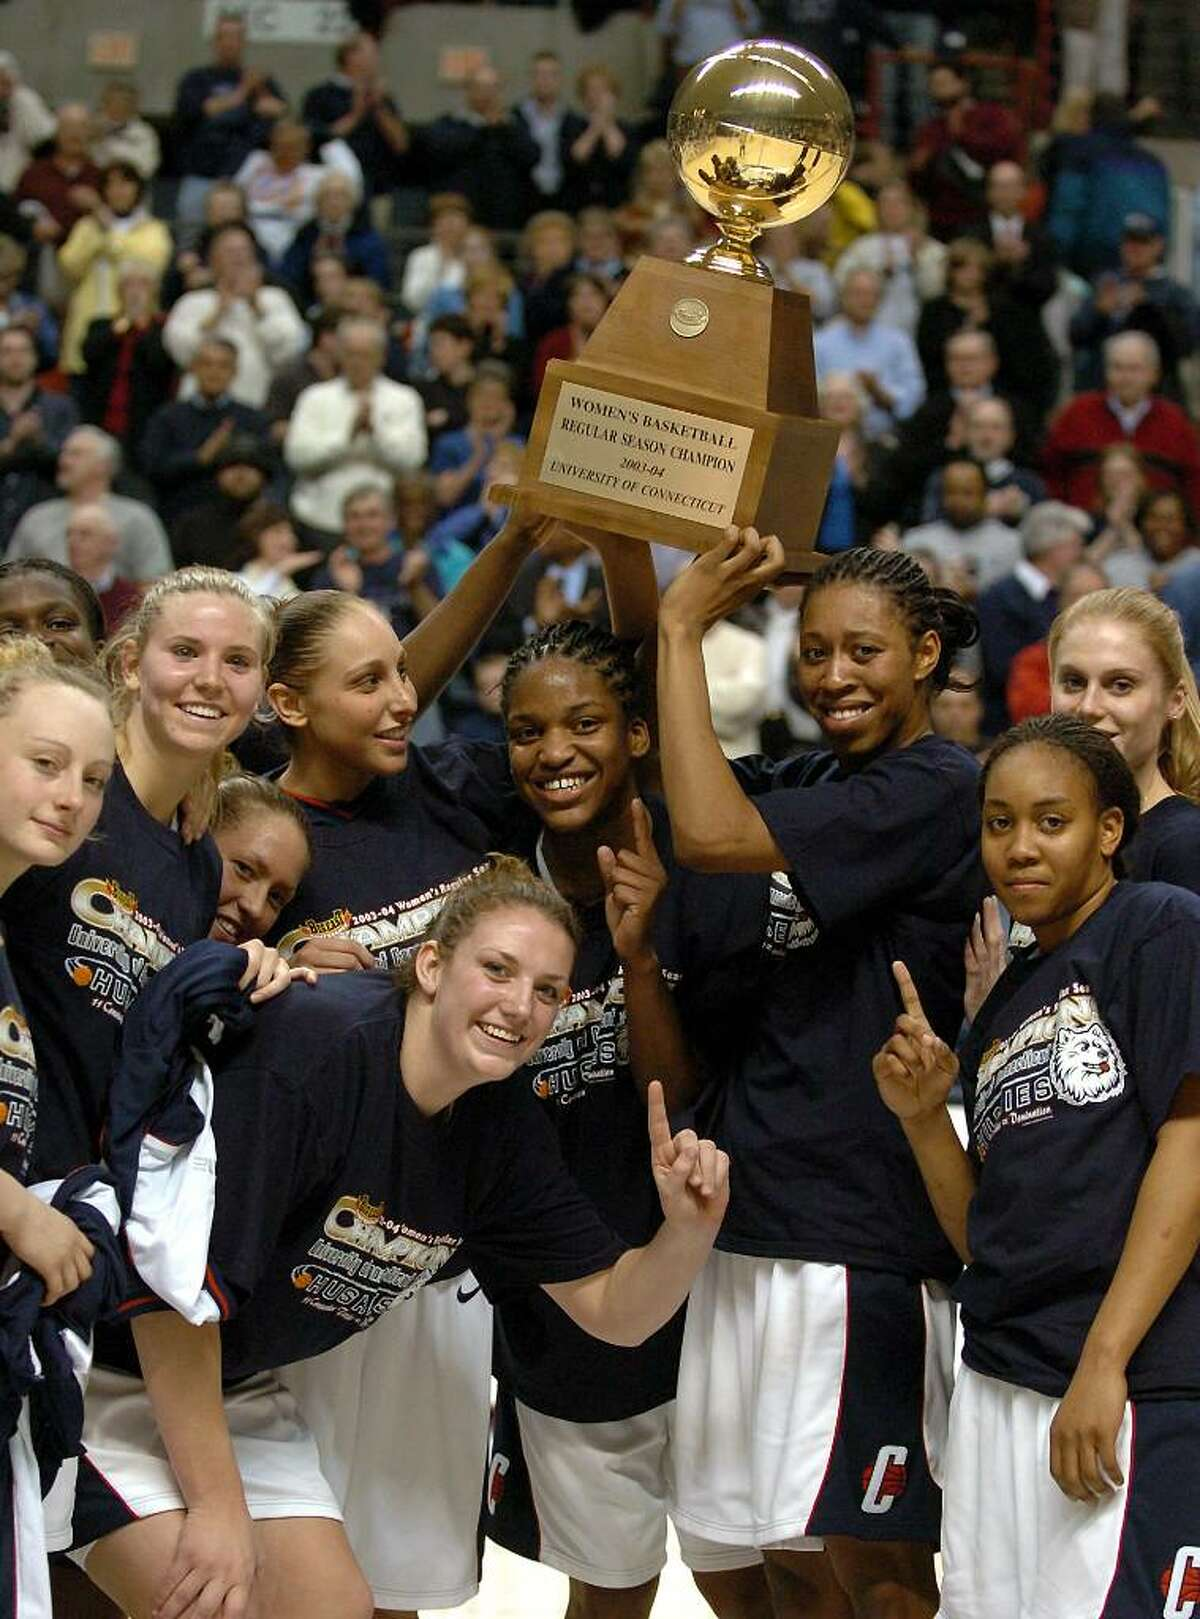 Members of the University of Connecticut women's basketball team pose with the Big East Conference regular season trophy after the Connecticut-West Virginia game at Storrs, Conn., Tuesday, March 2, 2004. From left are: Maria Conlon, Ann Strother, Morgan Valley, Diana Taurasi , Liz Sherwood, Willnet Crockett, Jessica Moore, Kiana Roboinson, Nicole Wolff. (AP Photo/Bob Child)